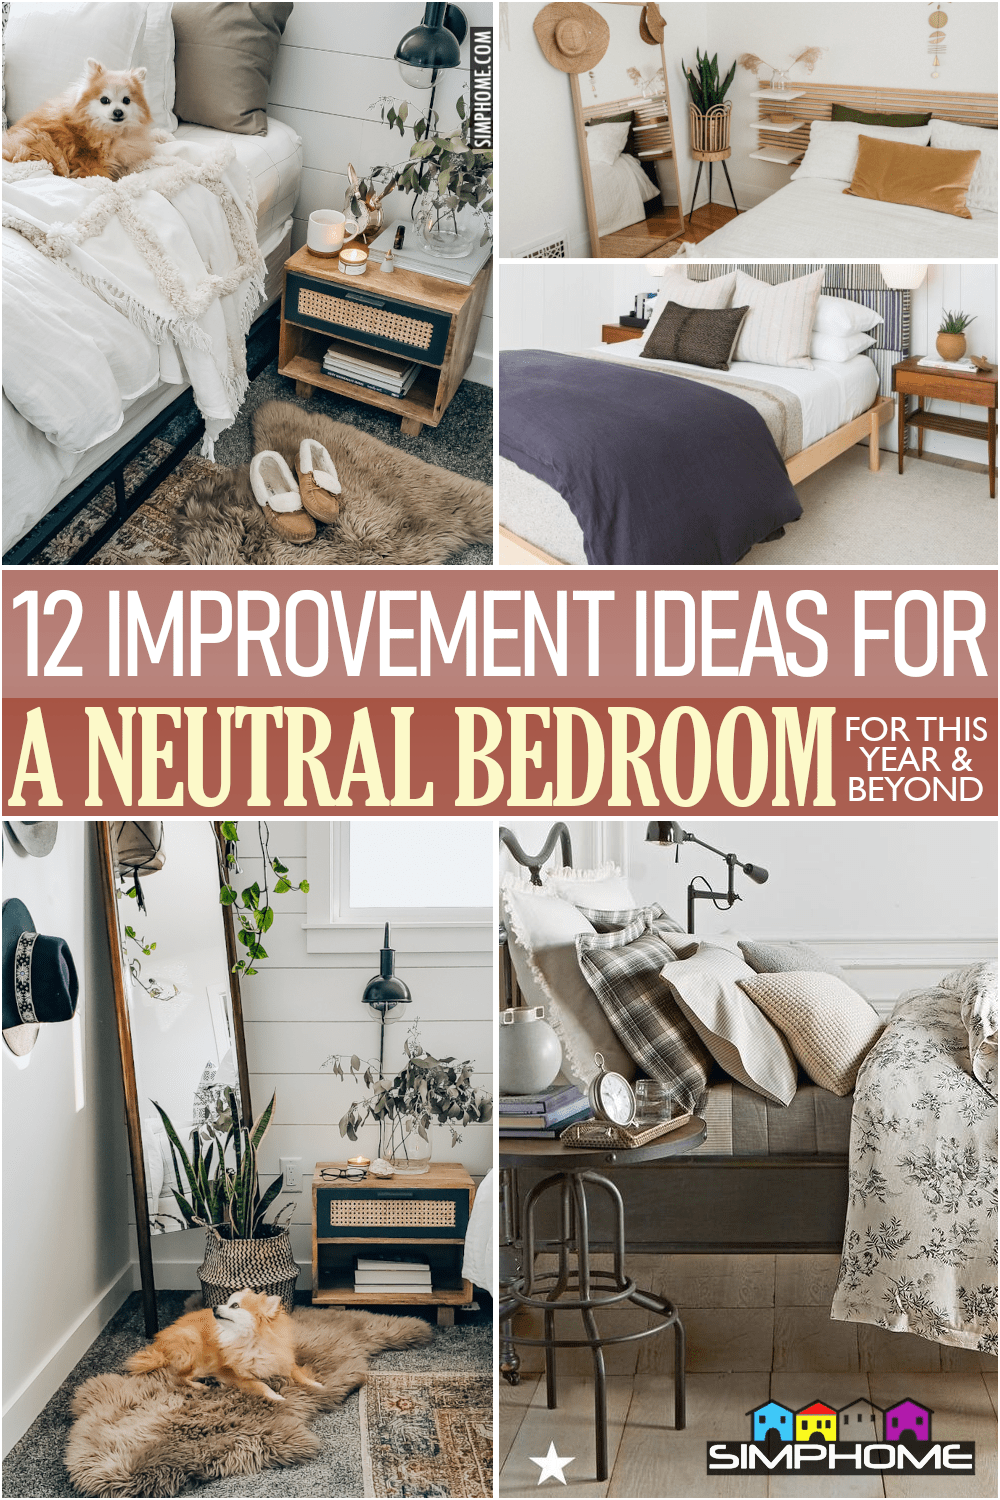 12 Improvement Ideas for a Neutral Bedroom via Simphome.comFeatured